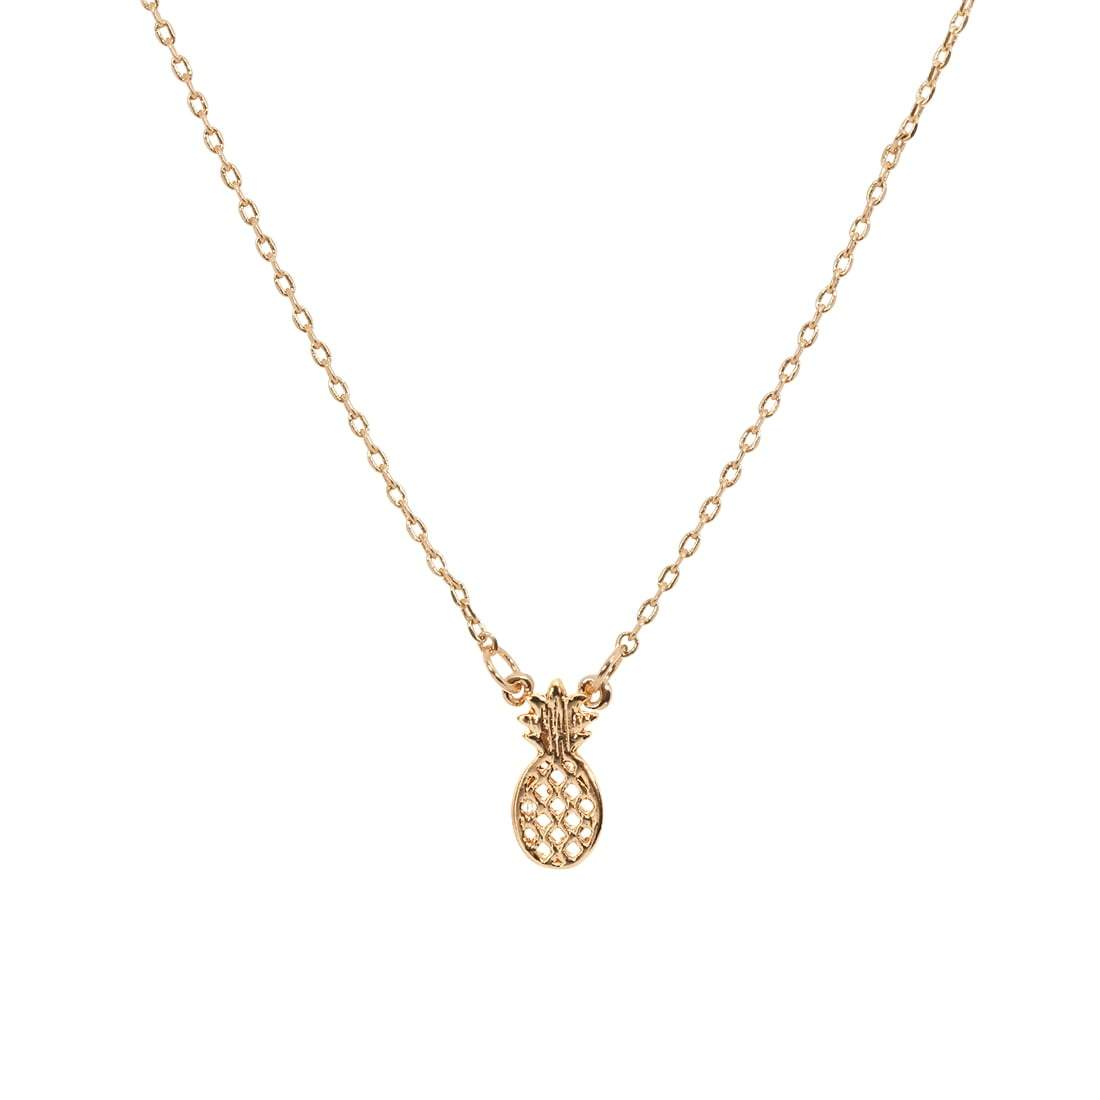 Pineapple Necklace